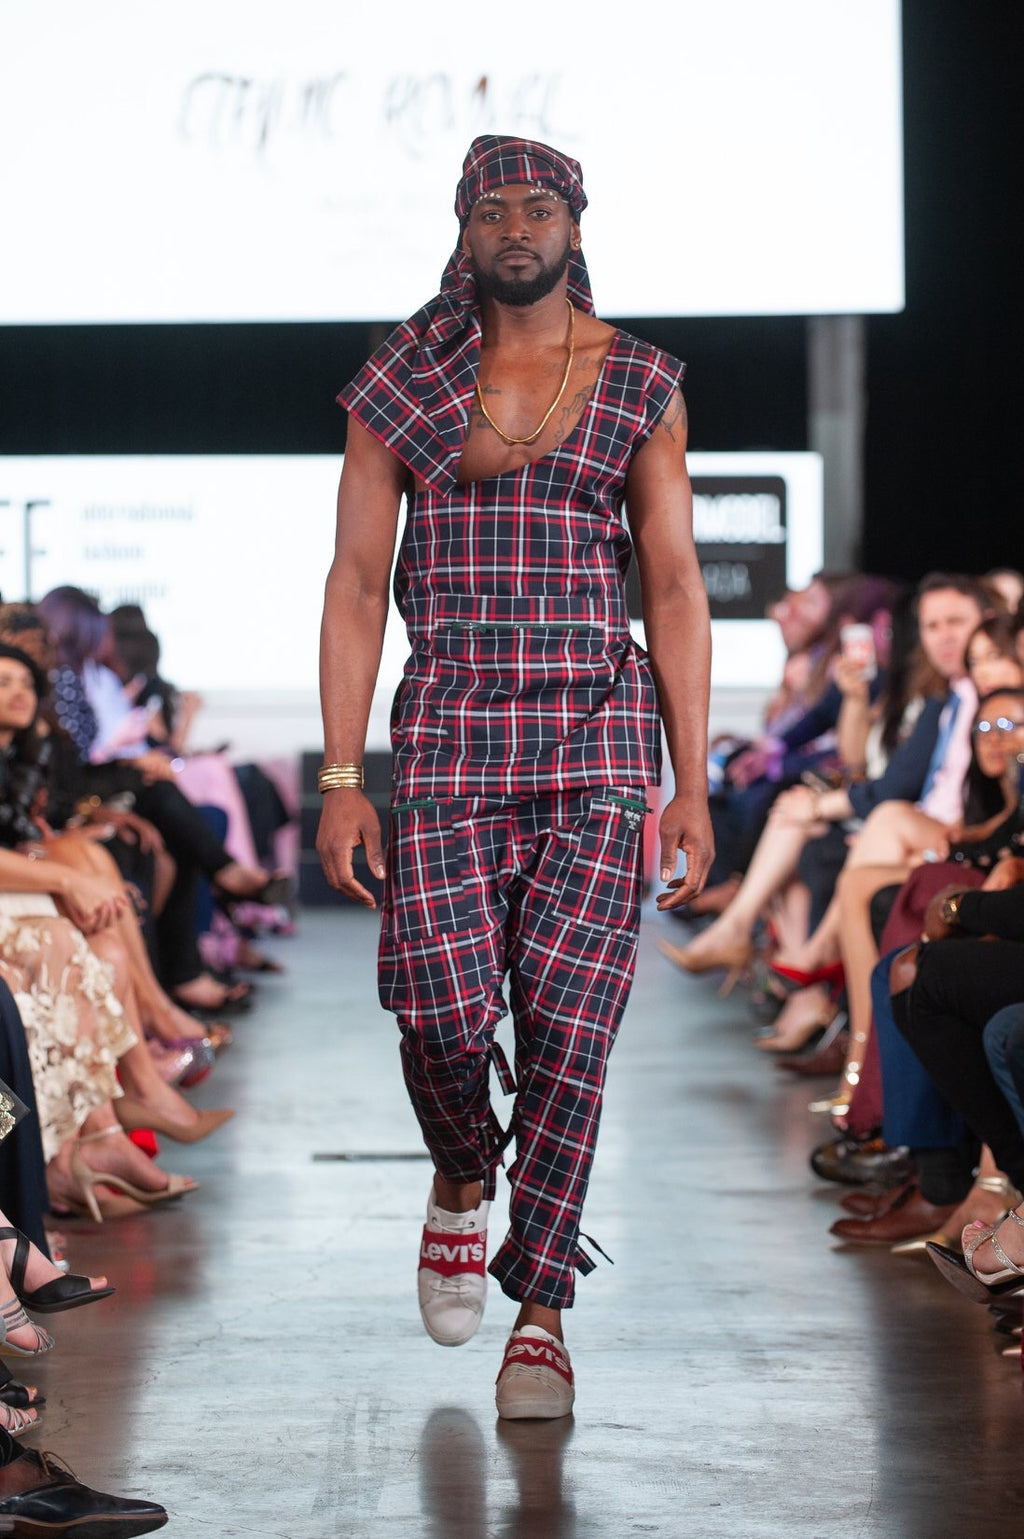 Urban Red tartan Massai